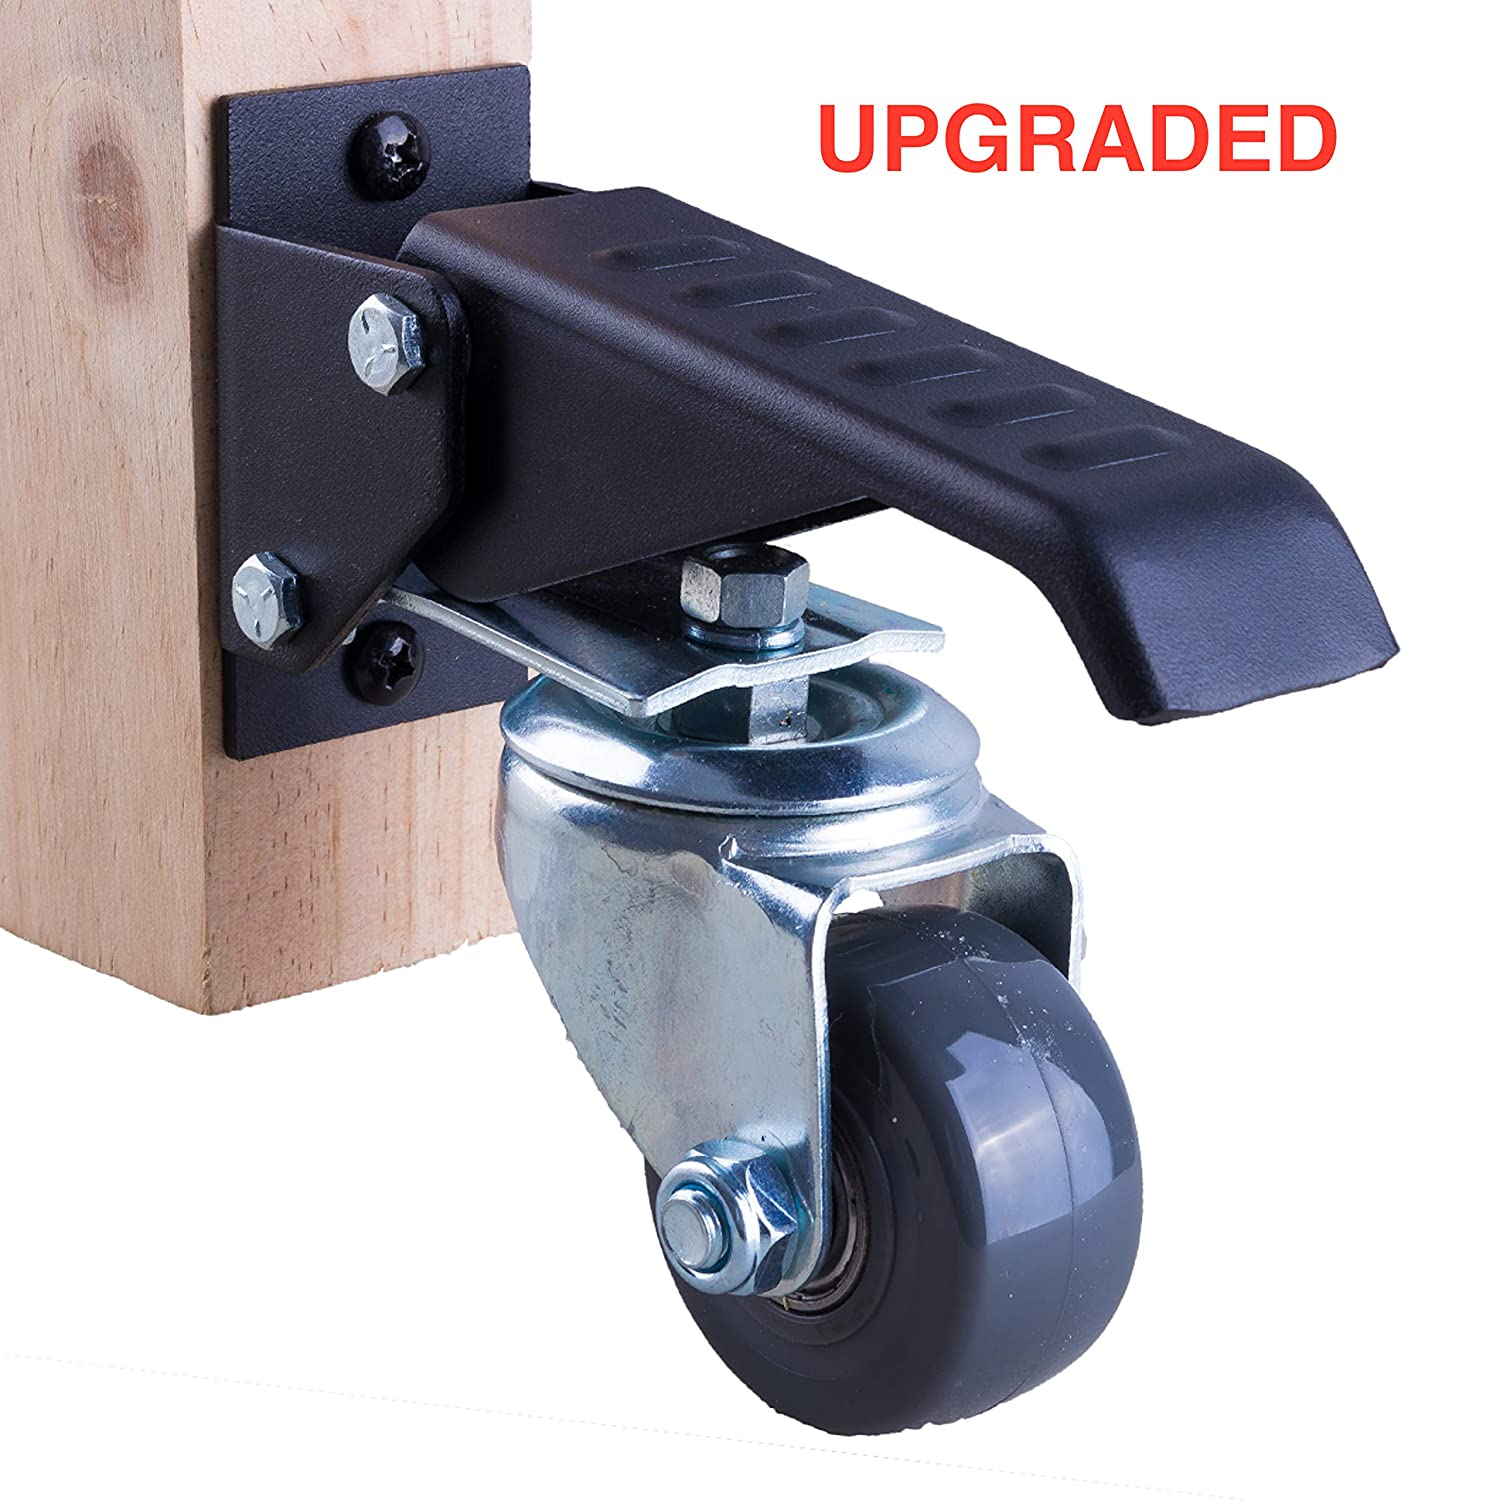 Peachy Details About Workbench Caster Kit 4 Extra Heavy Duty Retractable Casters 800 Lbs Ncnpc Chair Design For Home Ncnpcorg